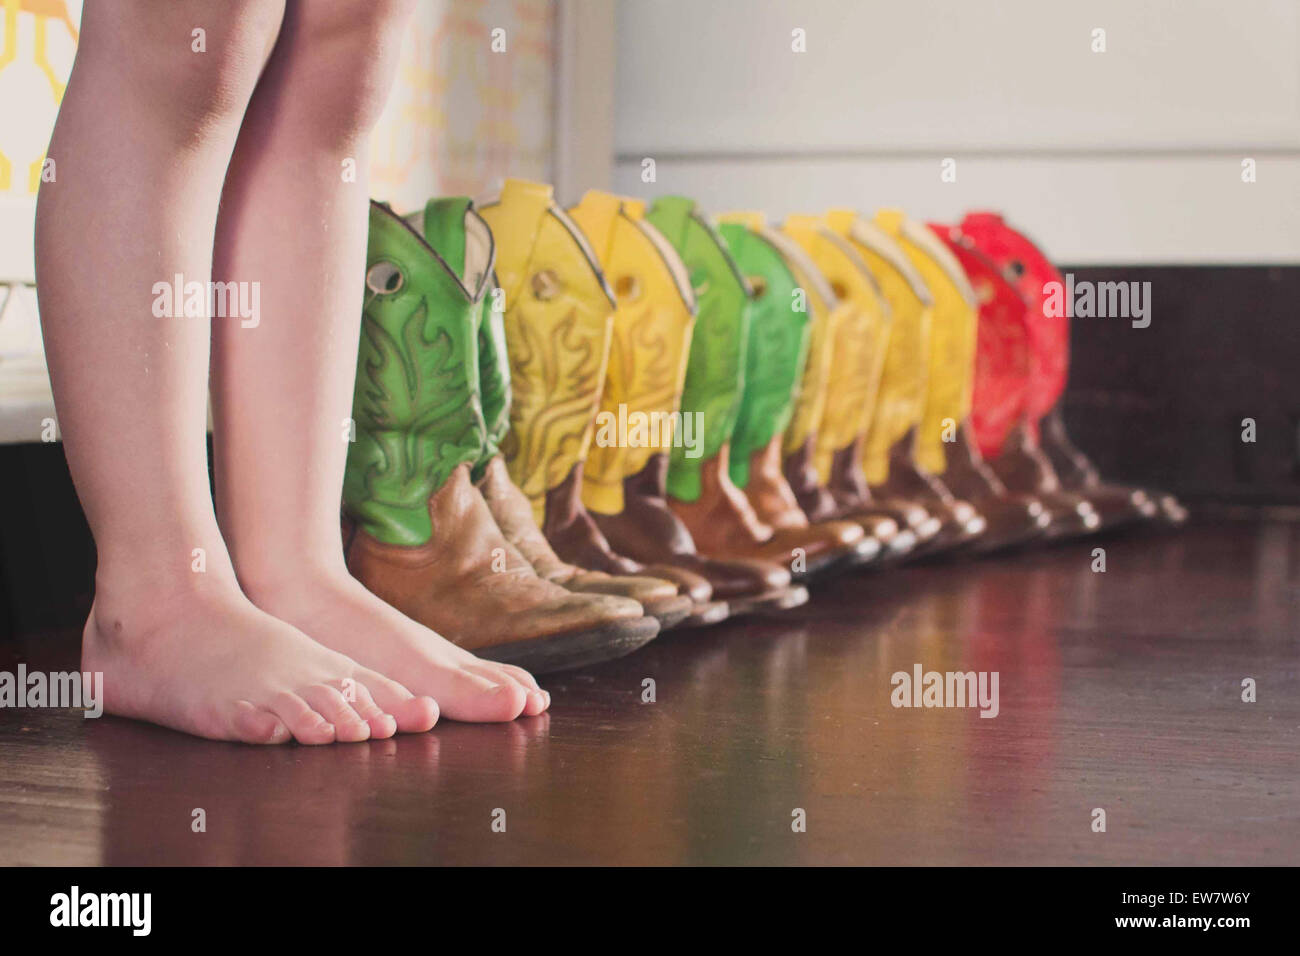 Boy standing next to a row of colorful cowboy boots - Stock Image